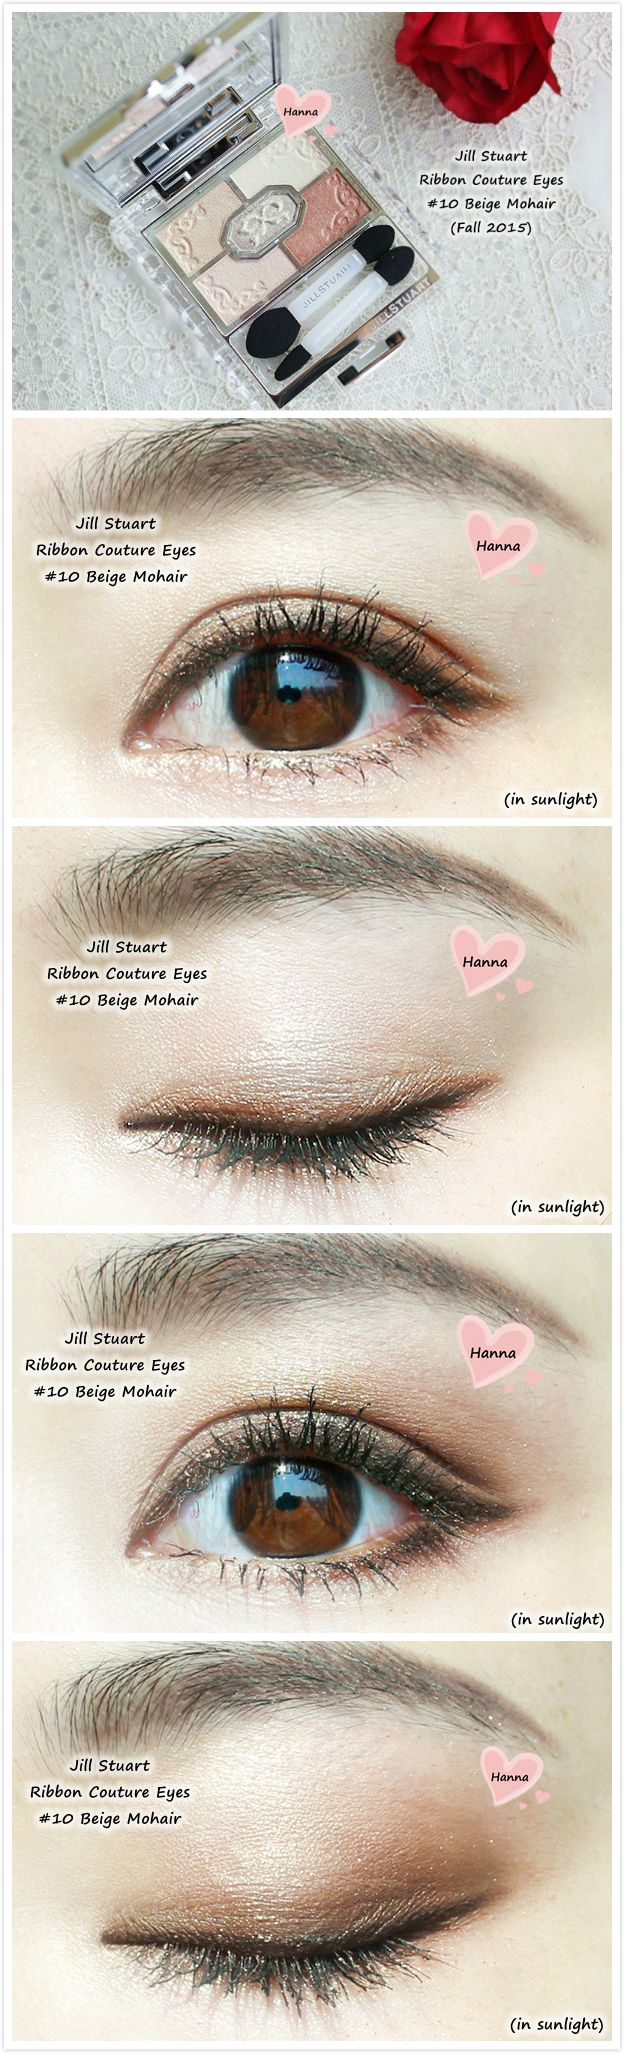 Jill Stuart Ribbon Couture Eyes Beige Mohair Fall